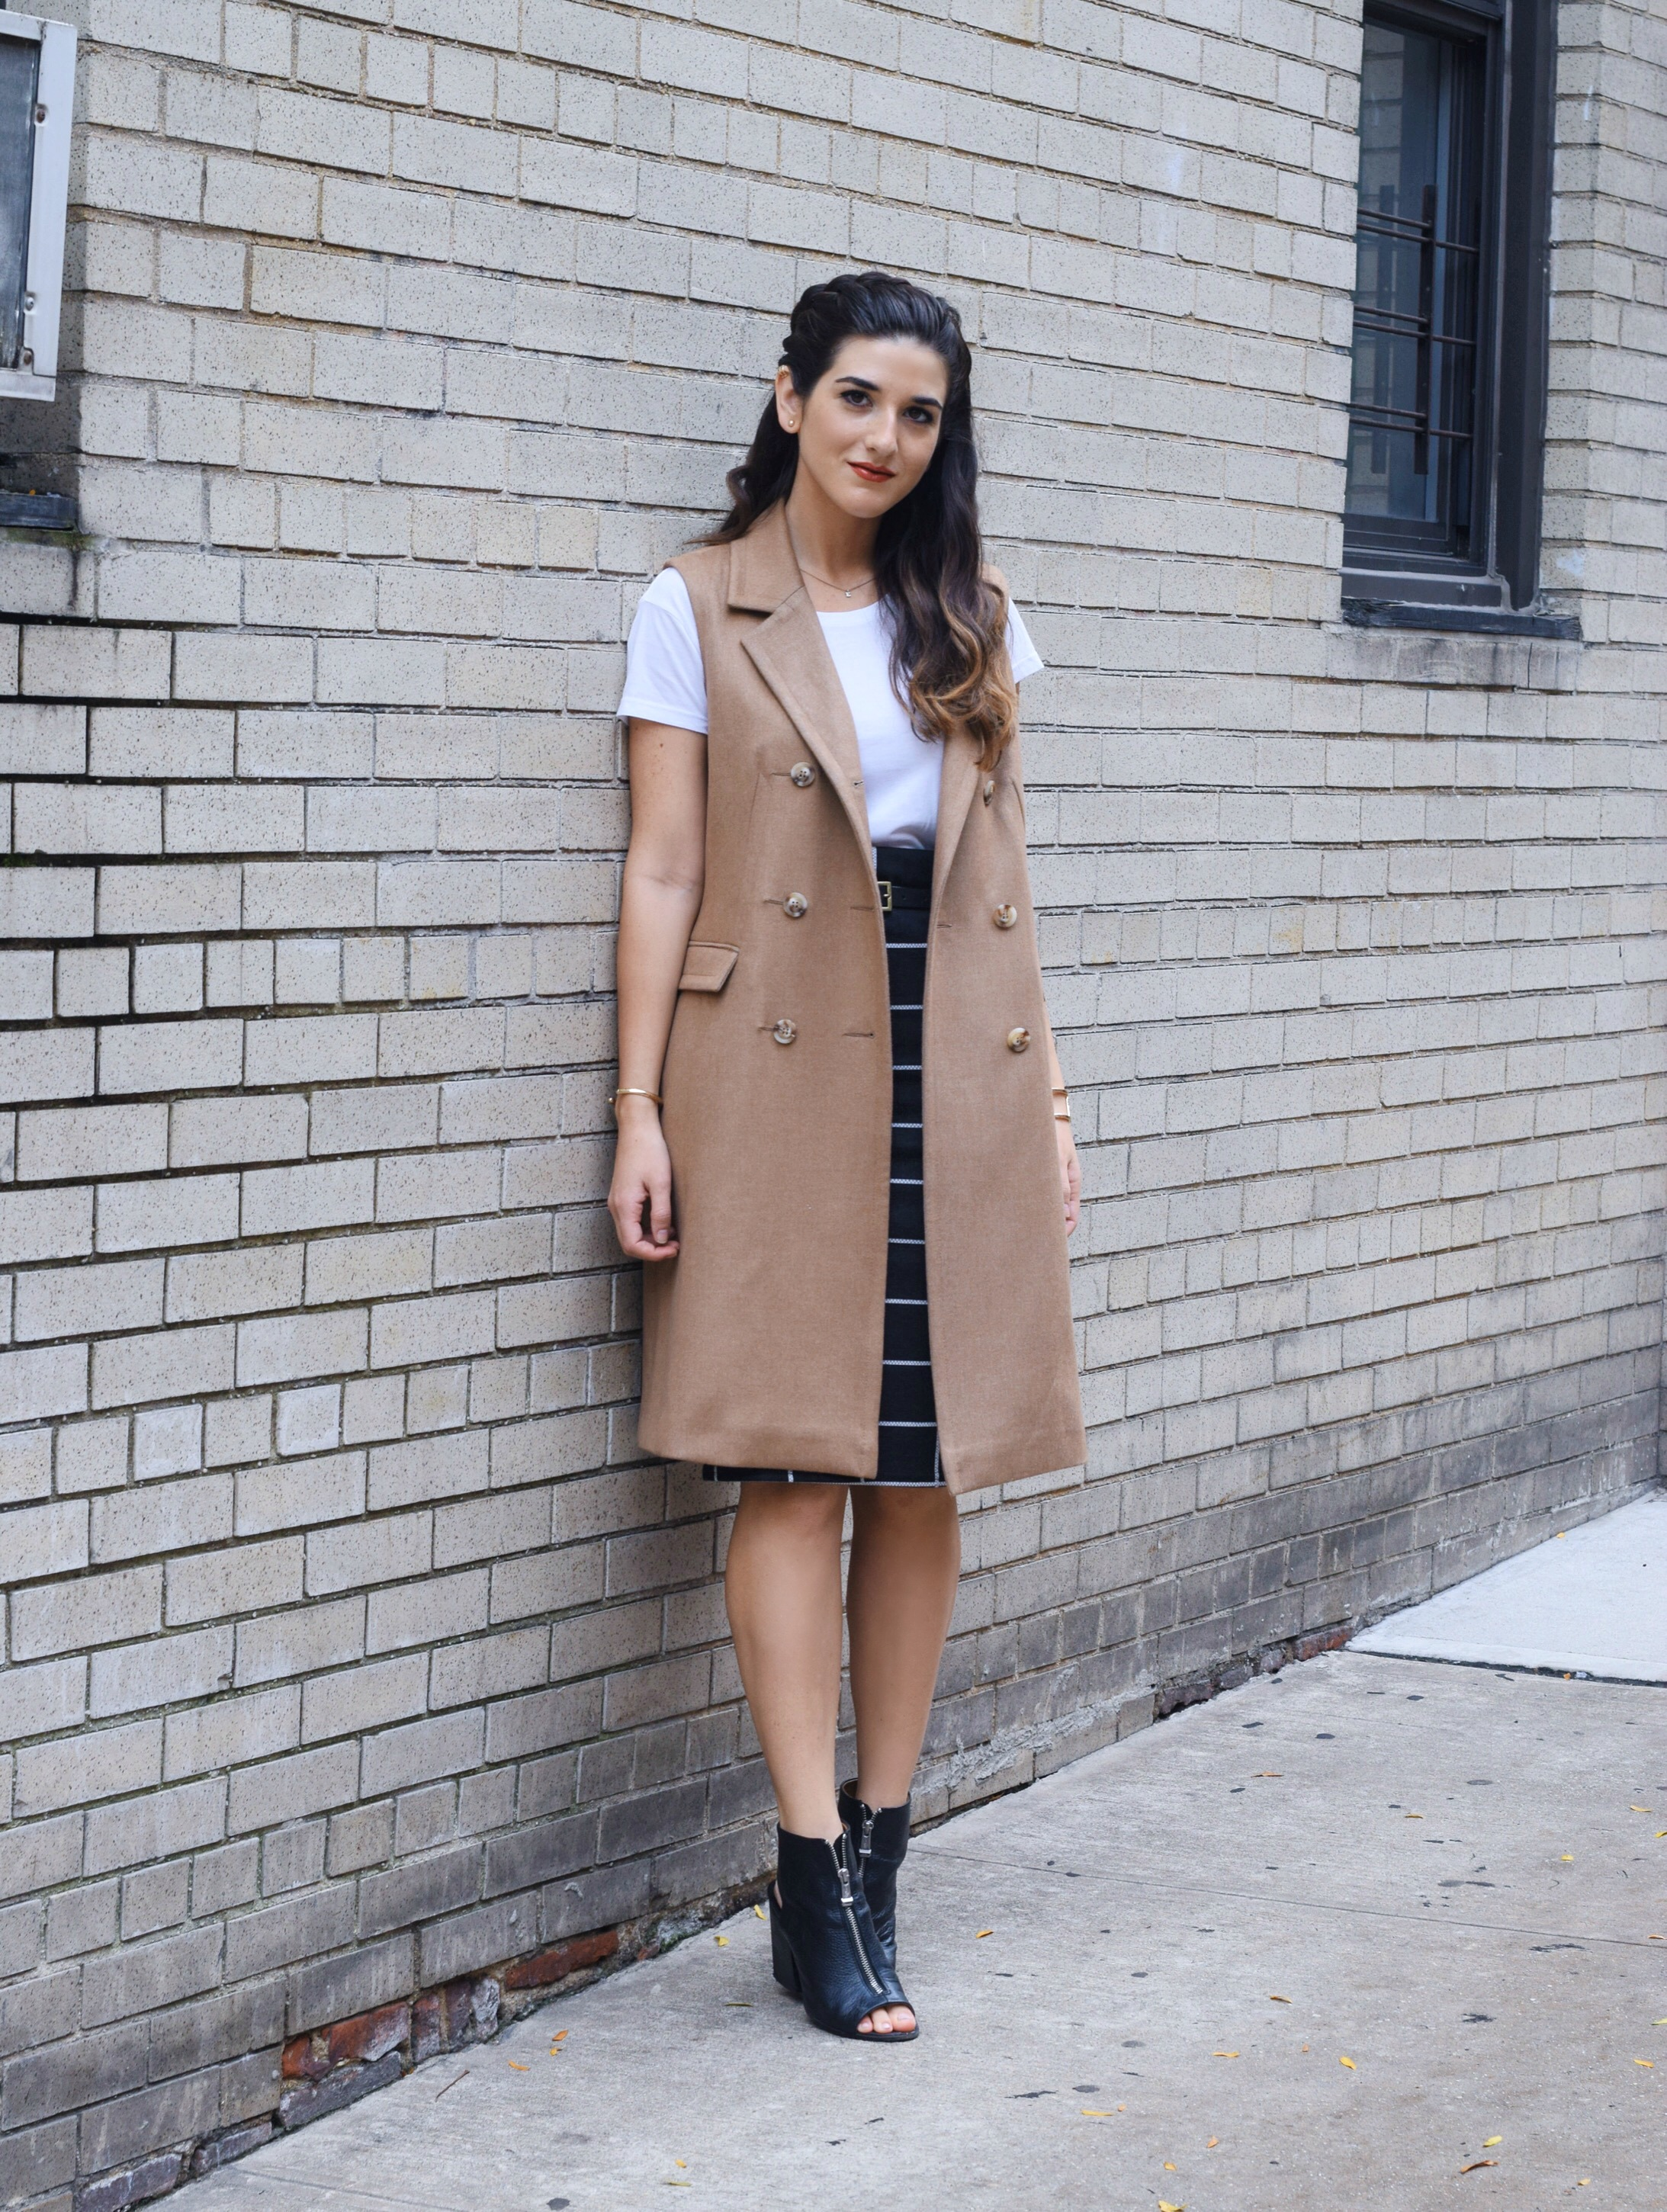 Sleeveless+Coat+Windowpane+Skirt+Oasis+Louboutins+&+Love+Fashion+Blog+Esther+Santer+NYC+Street+Style+Blogger+Vest+Braid+Outfit+OOTD+Inspo+Inspiration+White+Tee+Windowpane+Skirt+Gold+Jewelry+Cuff+Bracelet+Shoes+Black+Booties+Nordstrom+Women+Girl+Trendy.jpg